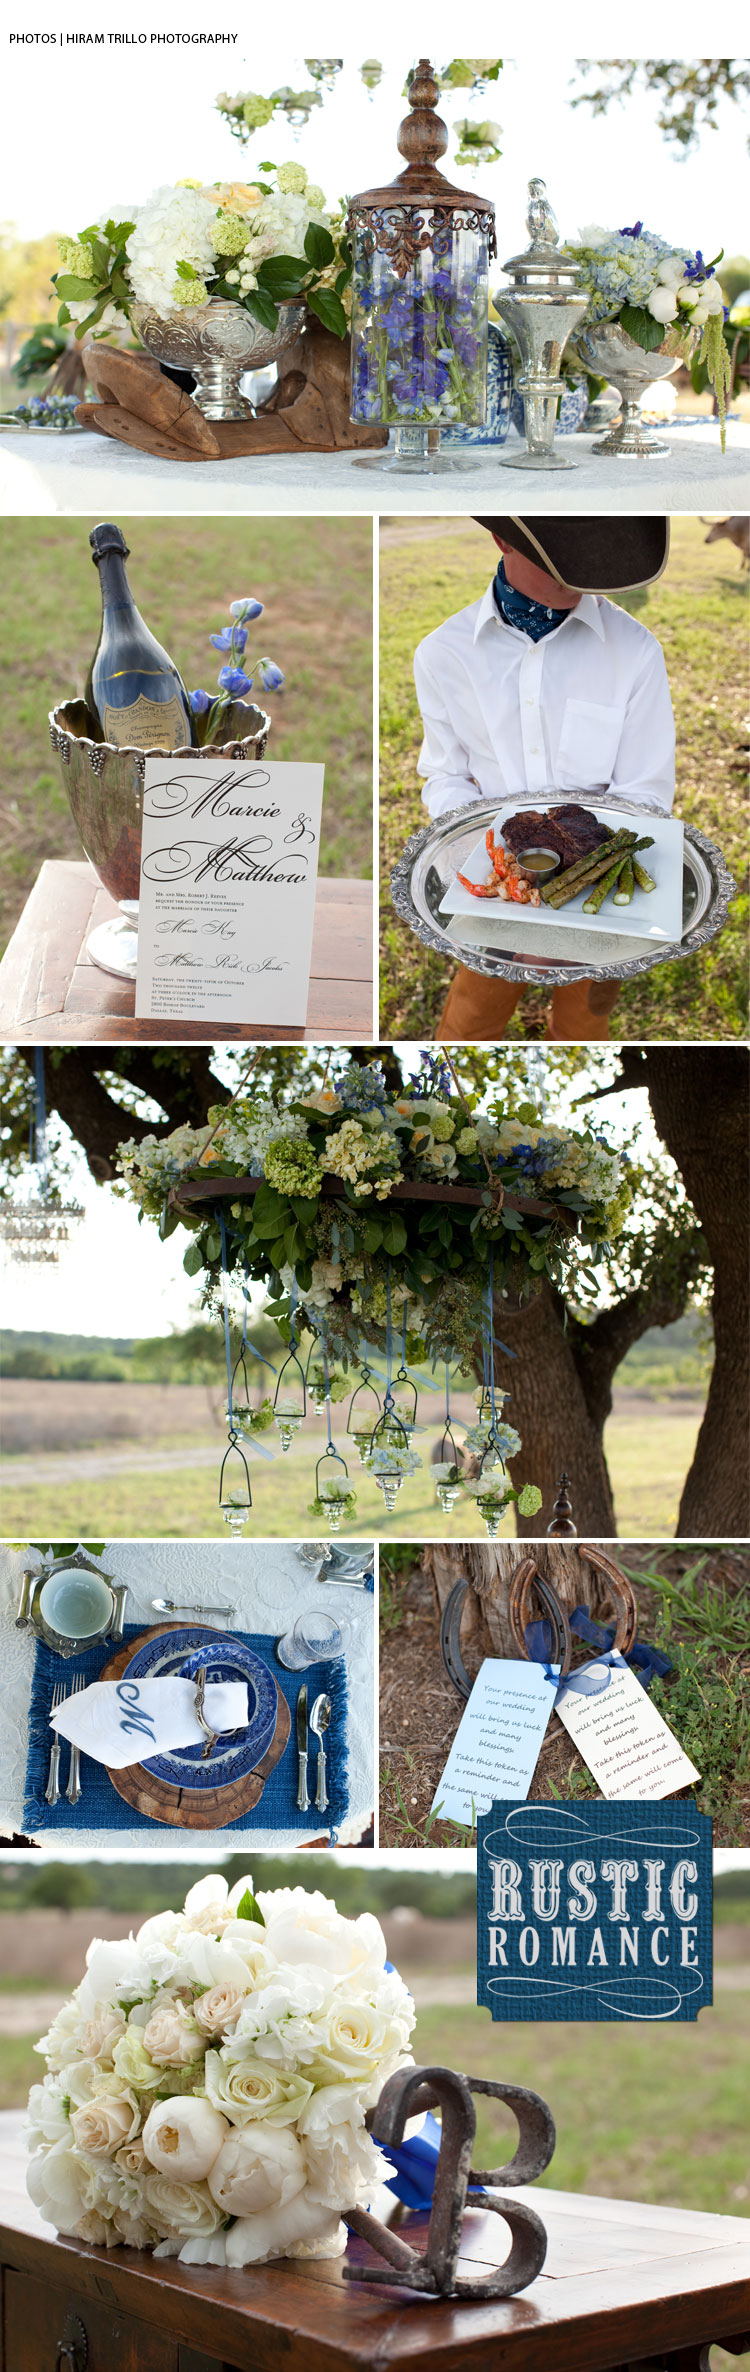 Texas wedding planner Two Clever Chicks